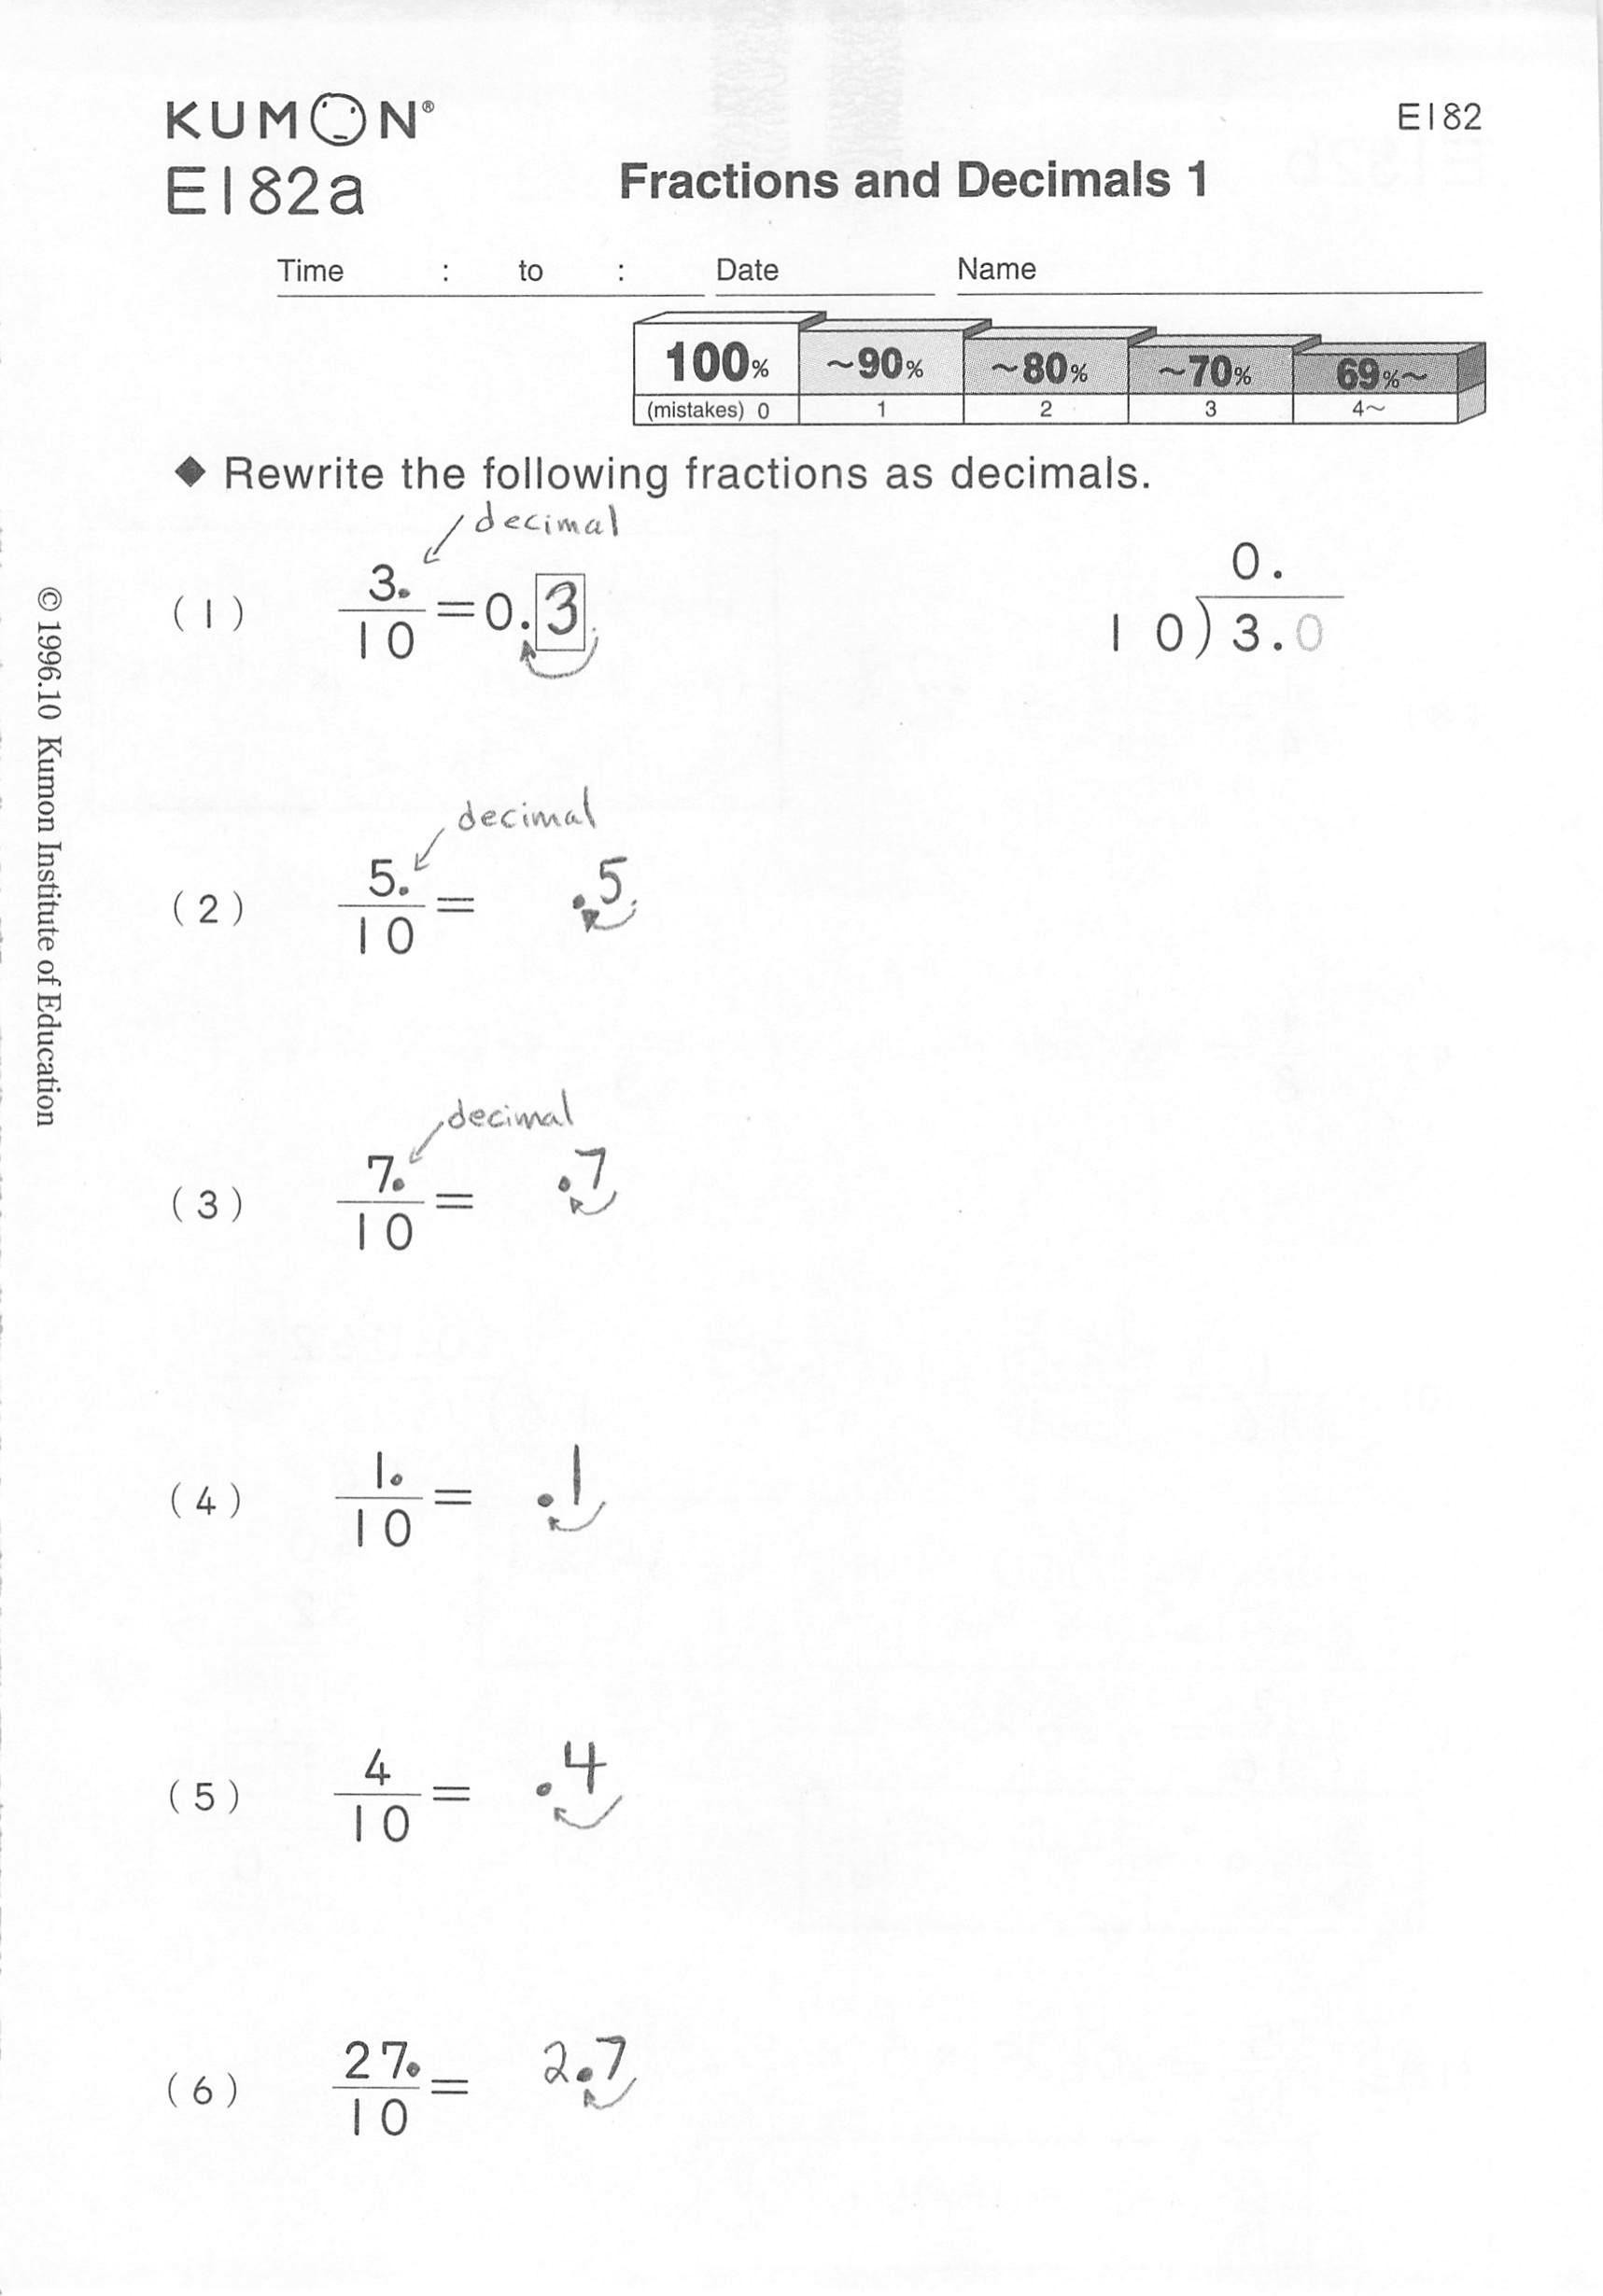 Kumon Maths Worksheets Printable 6th Grade Geometry Grade 3 Addition Subtraction Worksheets